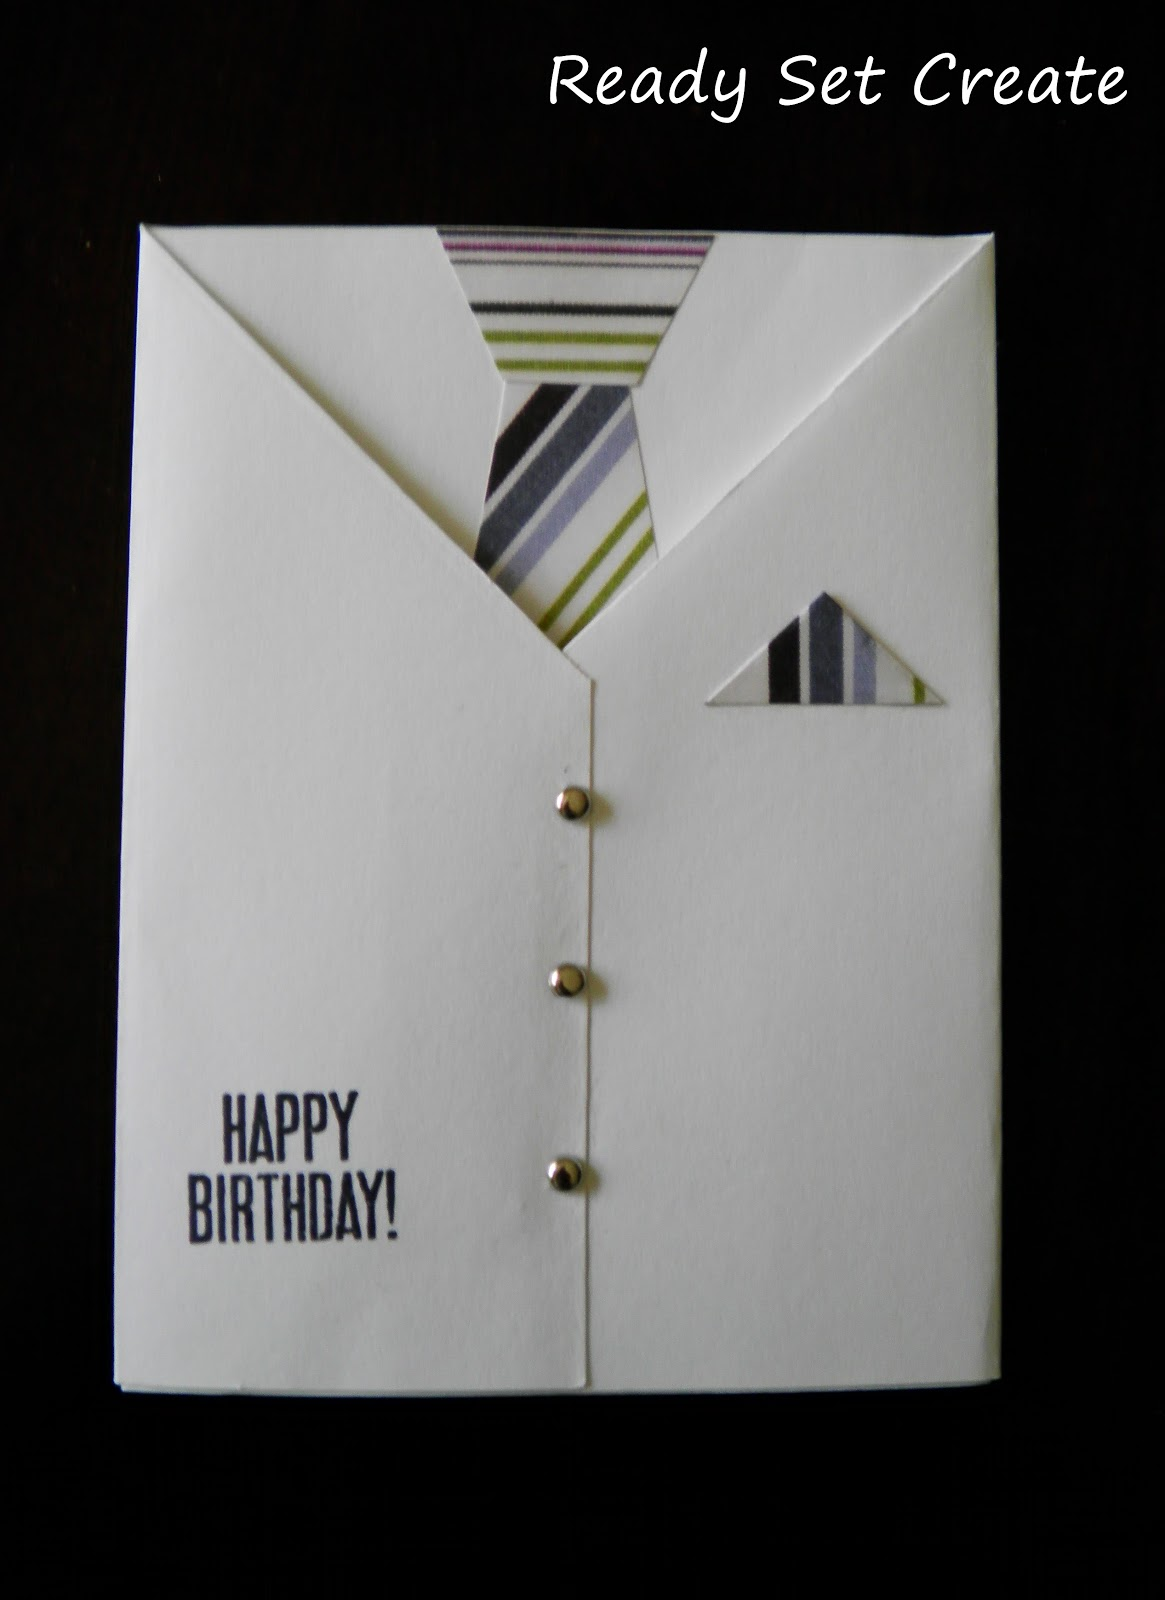 Birthday Cards For Men ~ Ready set create spread some love with a cute card